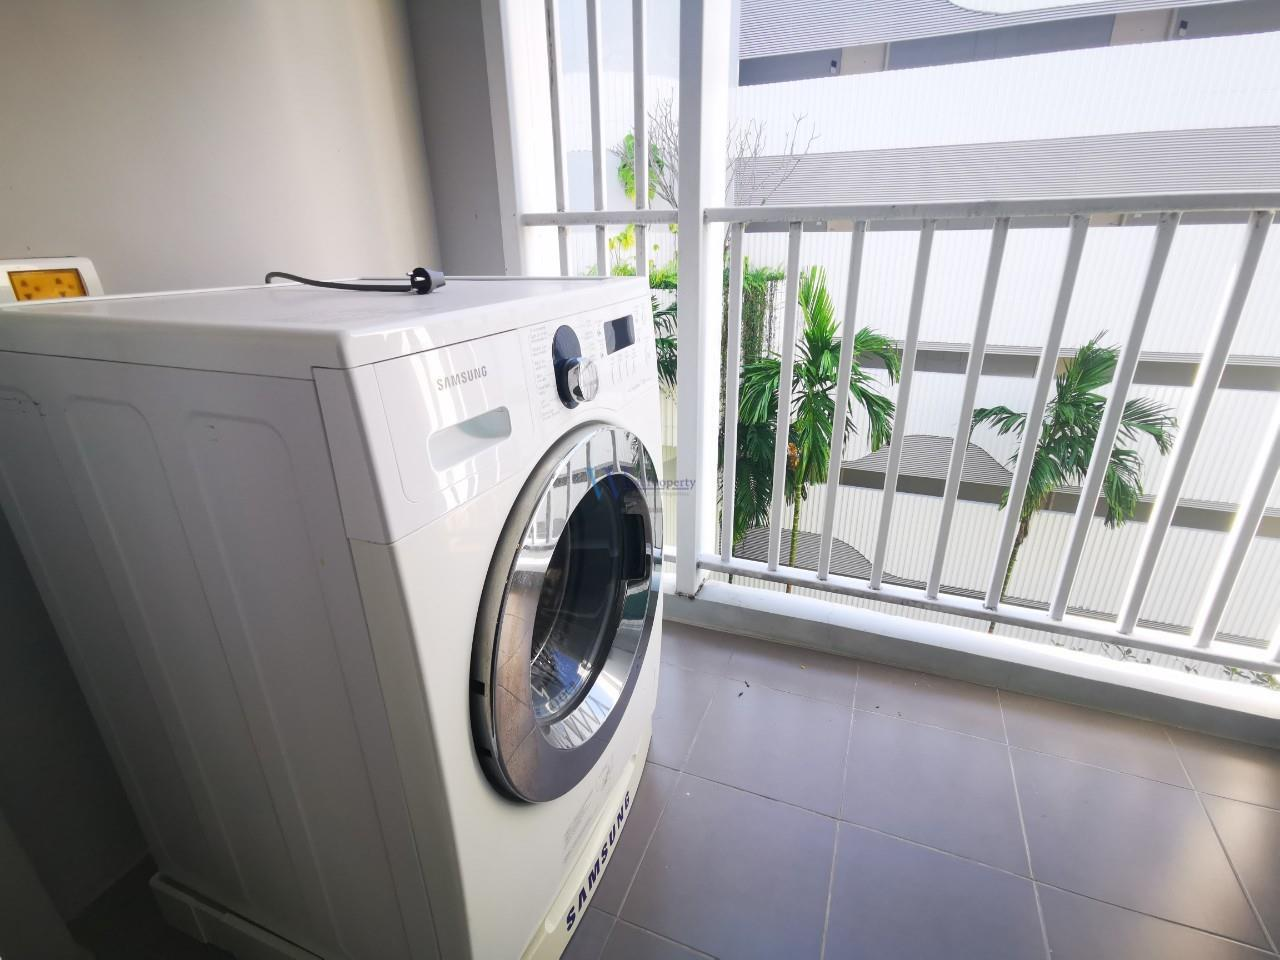 W Real Property Agency's 1 Bedroom Condo for rent in The Base Downtown Phuket, Wichit, Phuket 15